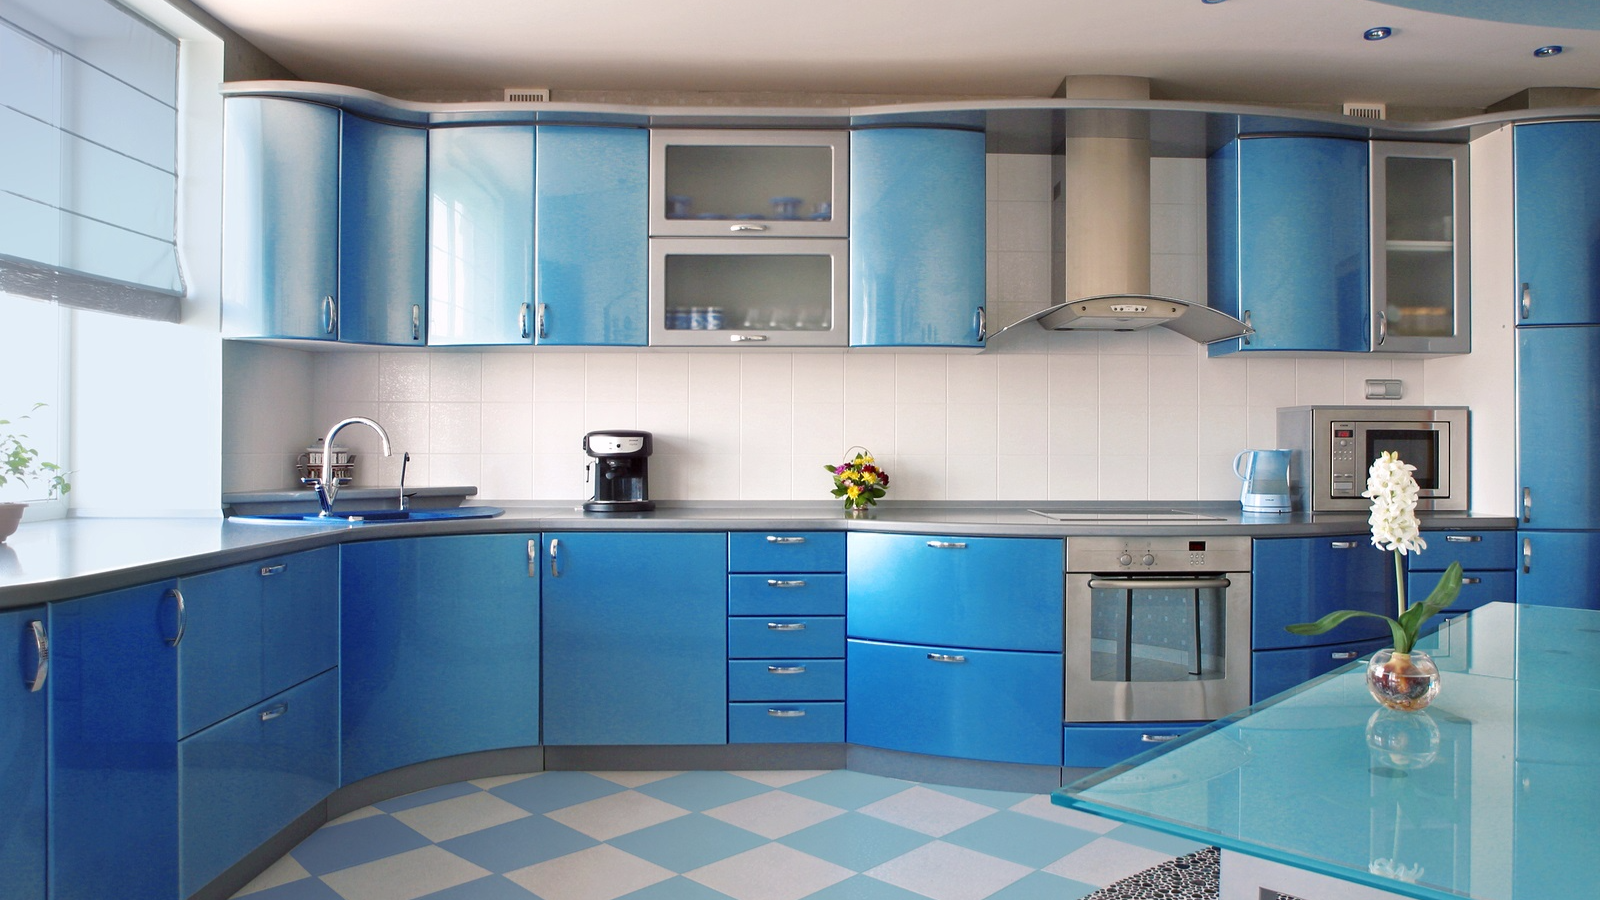 7 Ideas to Help You Create the Coolest Kitchen | House Tipster